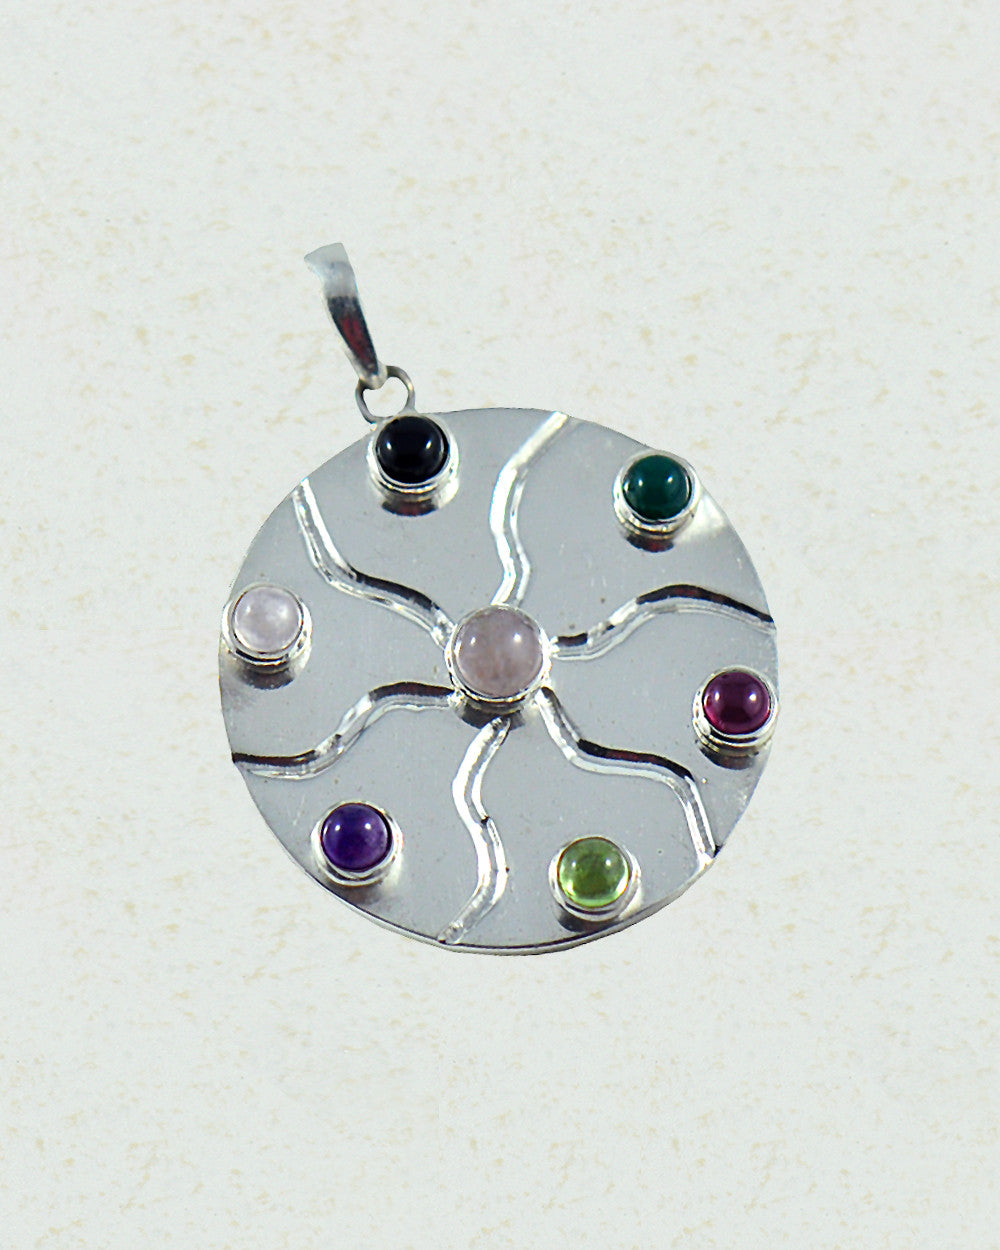 Dharma chakra pendant in sterling silver sivalya dharma chakra pendant in sterling silver aloadofball Gallery